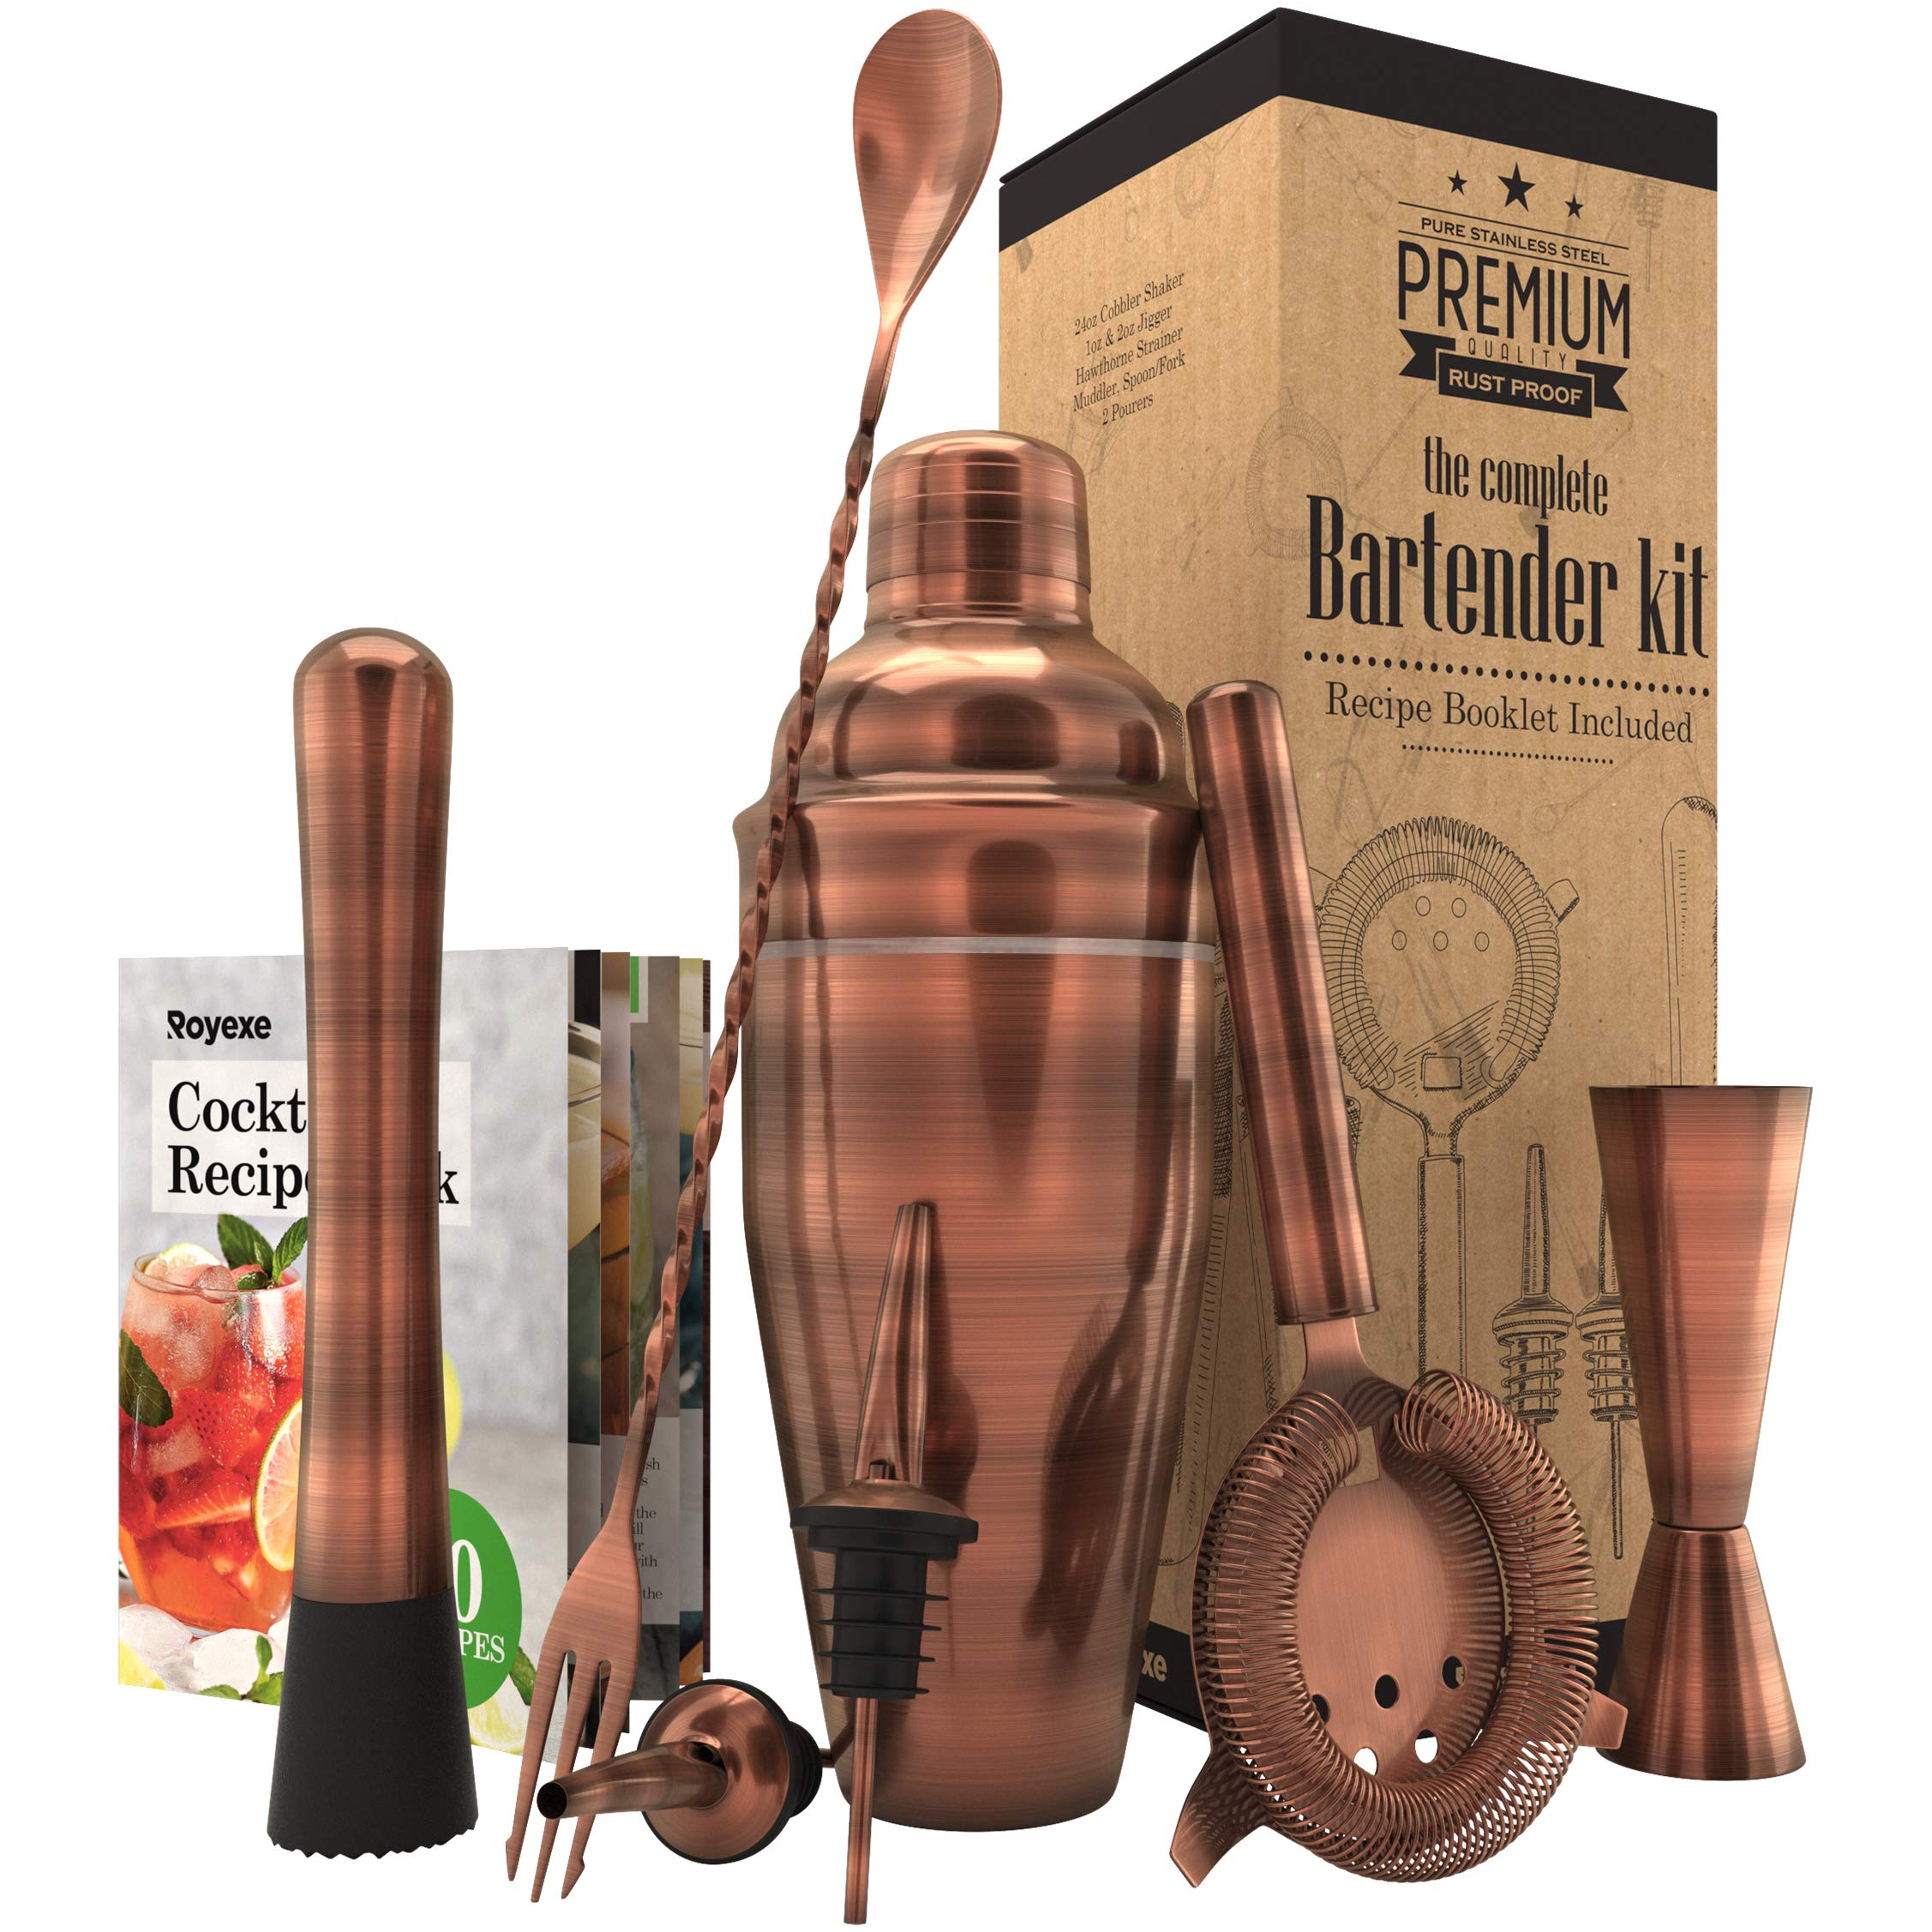 All-inclusive Bar Set | Professional Home Bartender Cocktail Shaker Set | Includes a Recipe Book & All Necessary Bar Tools and Accessories | Impressive Gift for Men! (Brushed Copper)